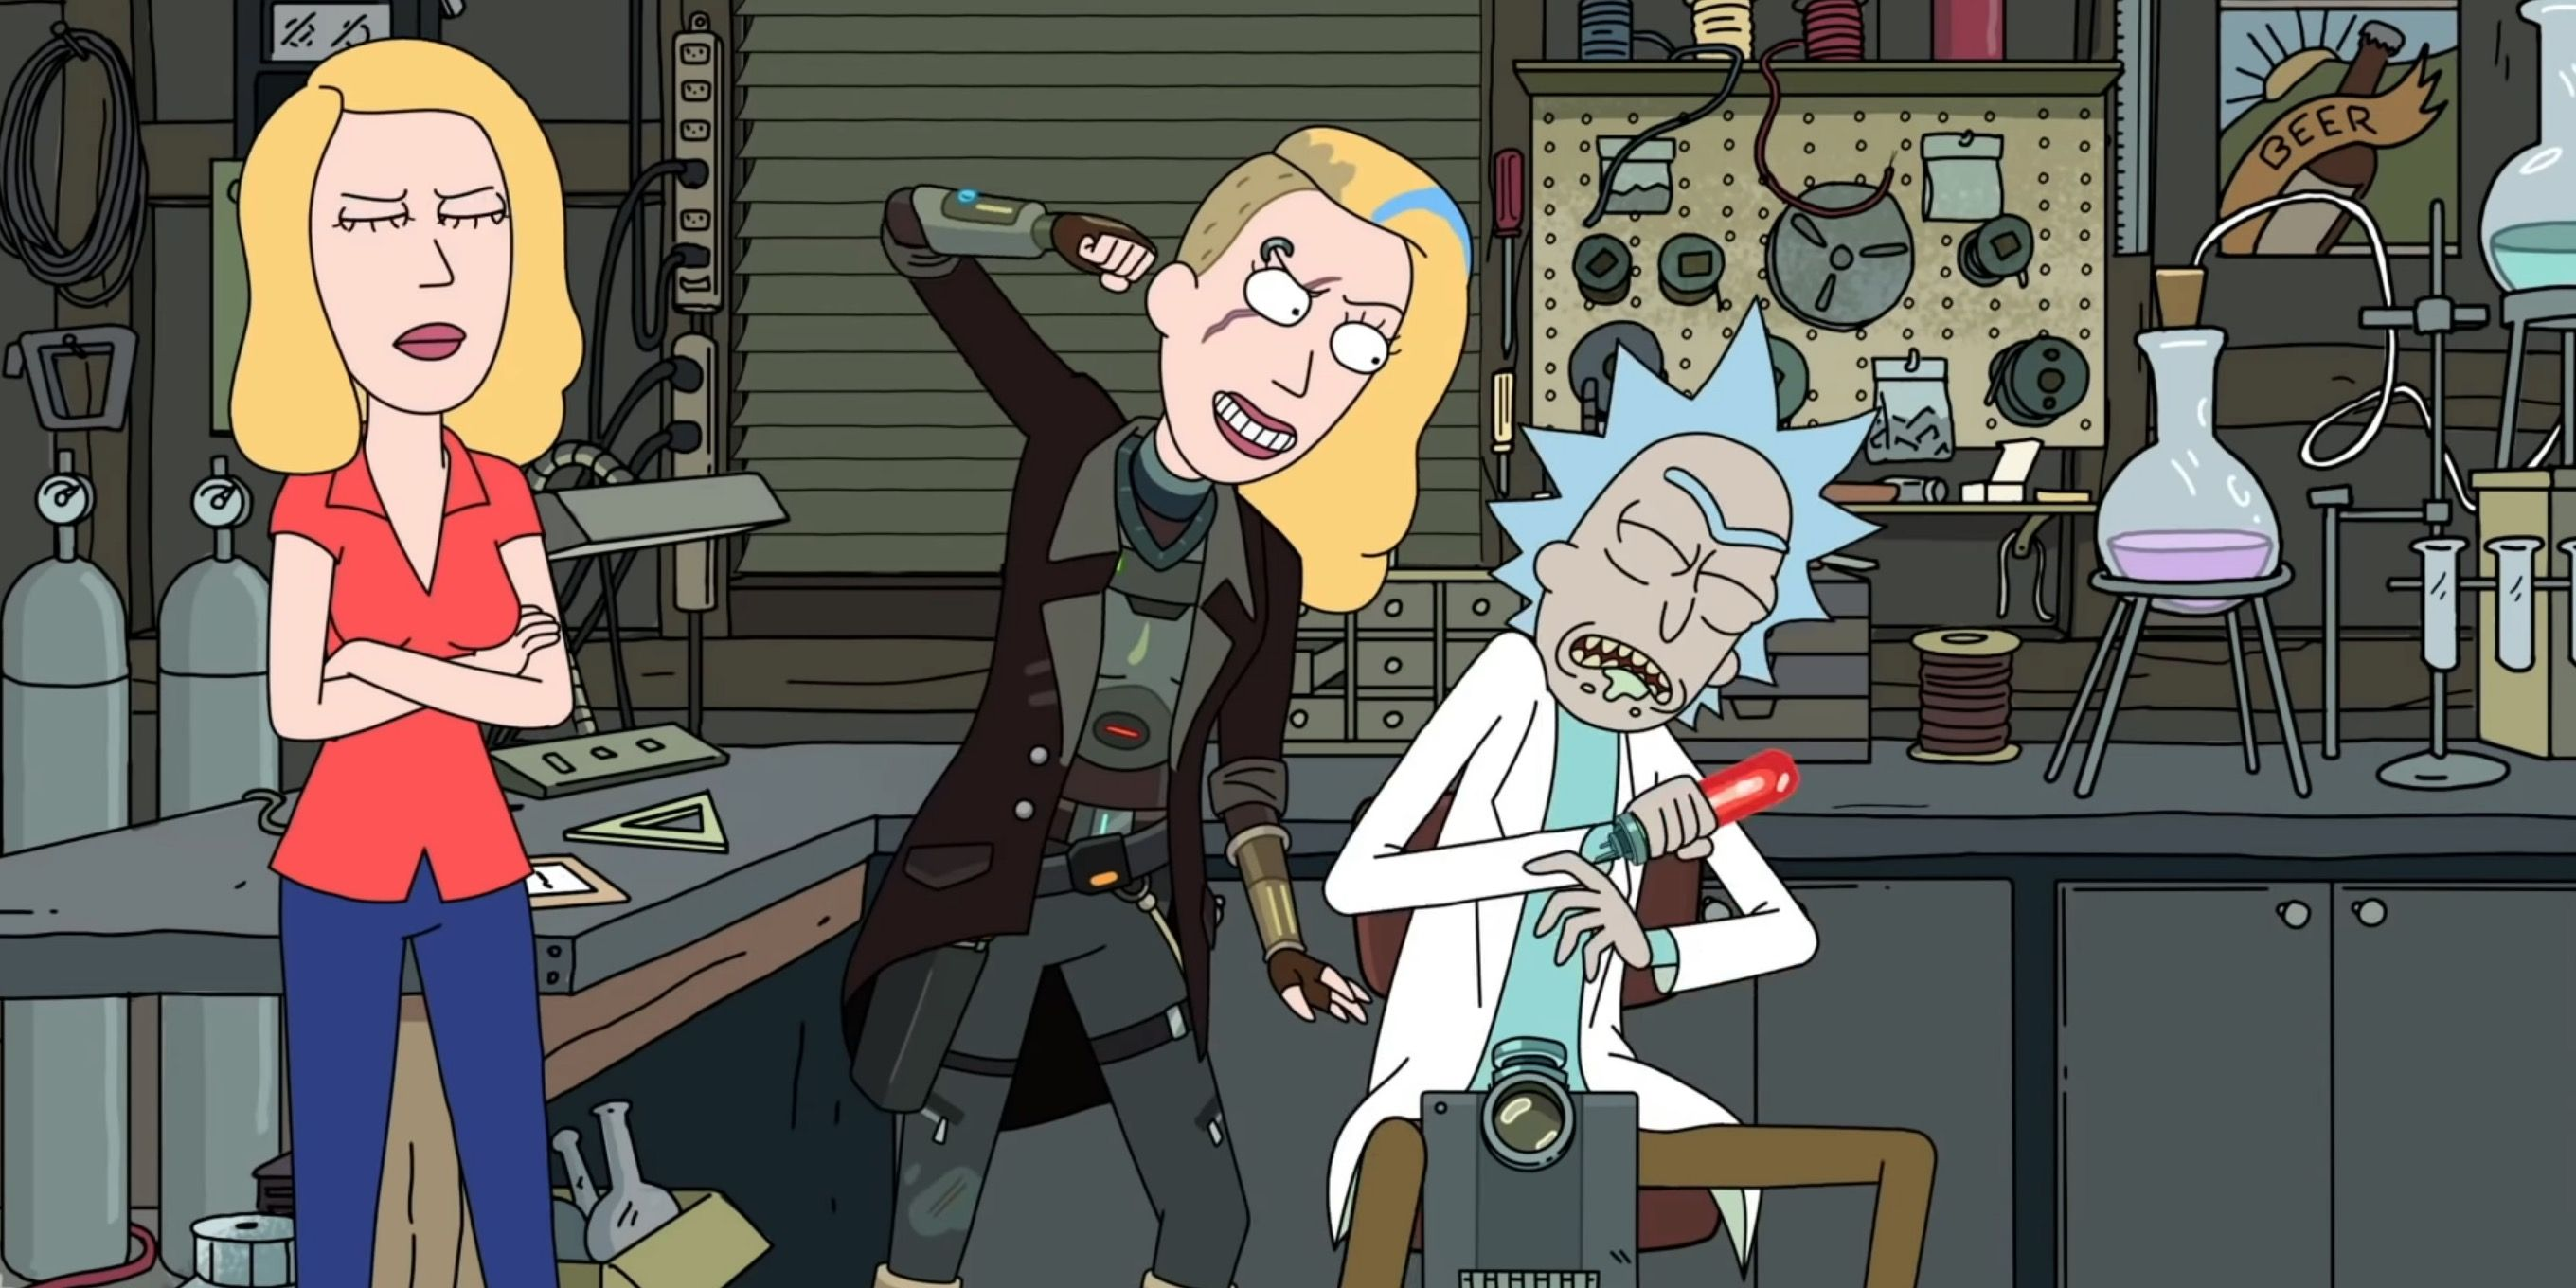 Rick & Morty Season 5 Features The Return of Space Beth